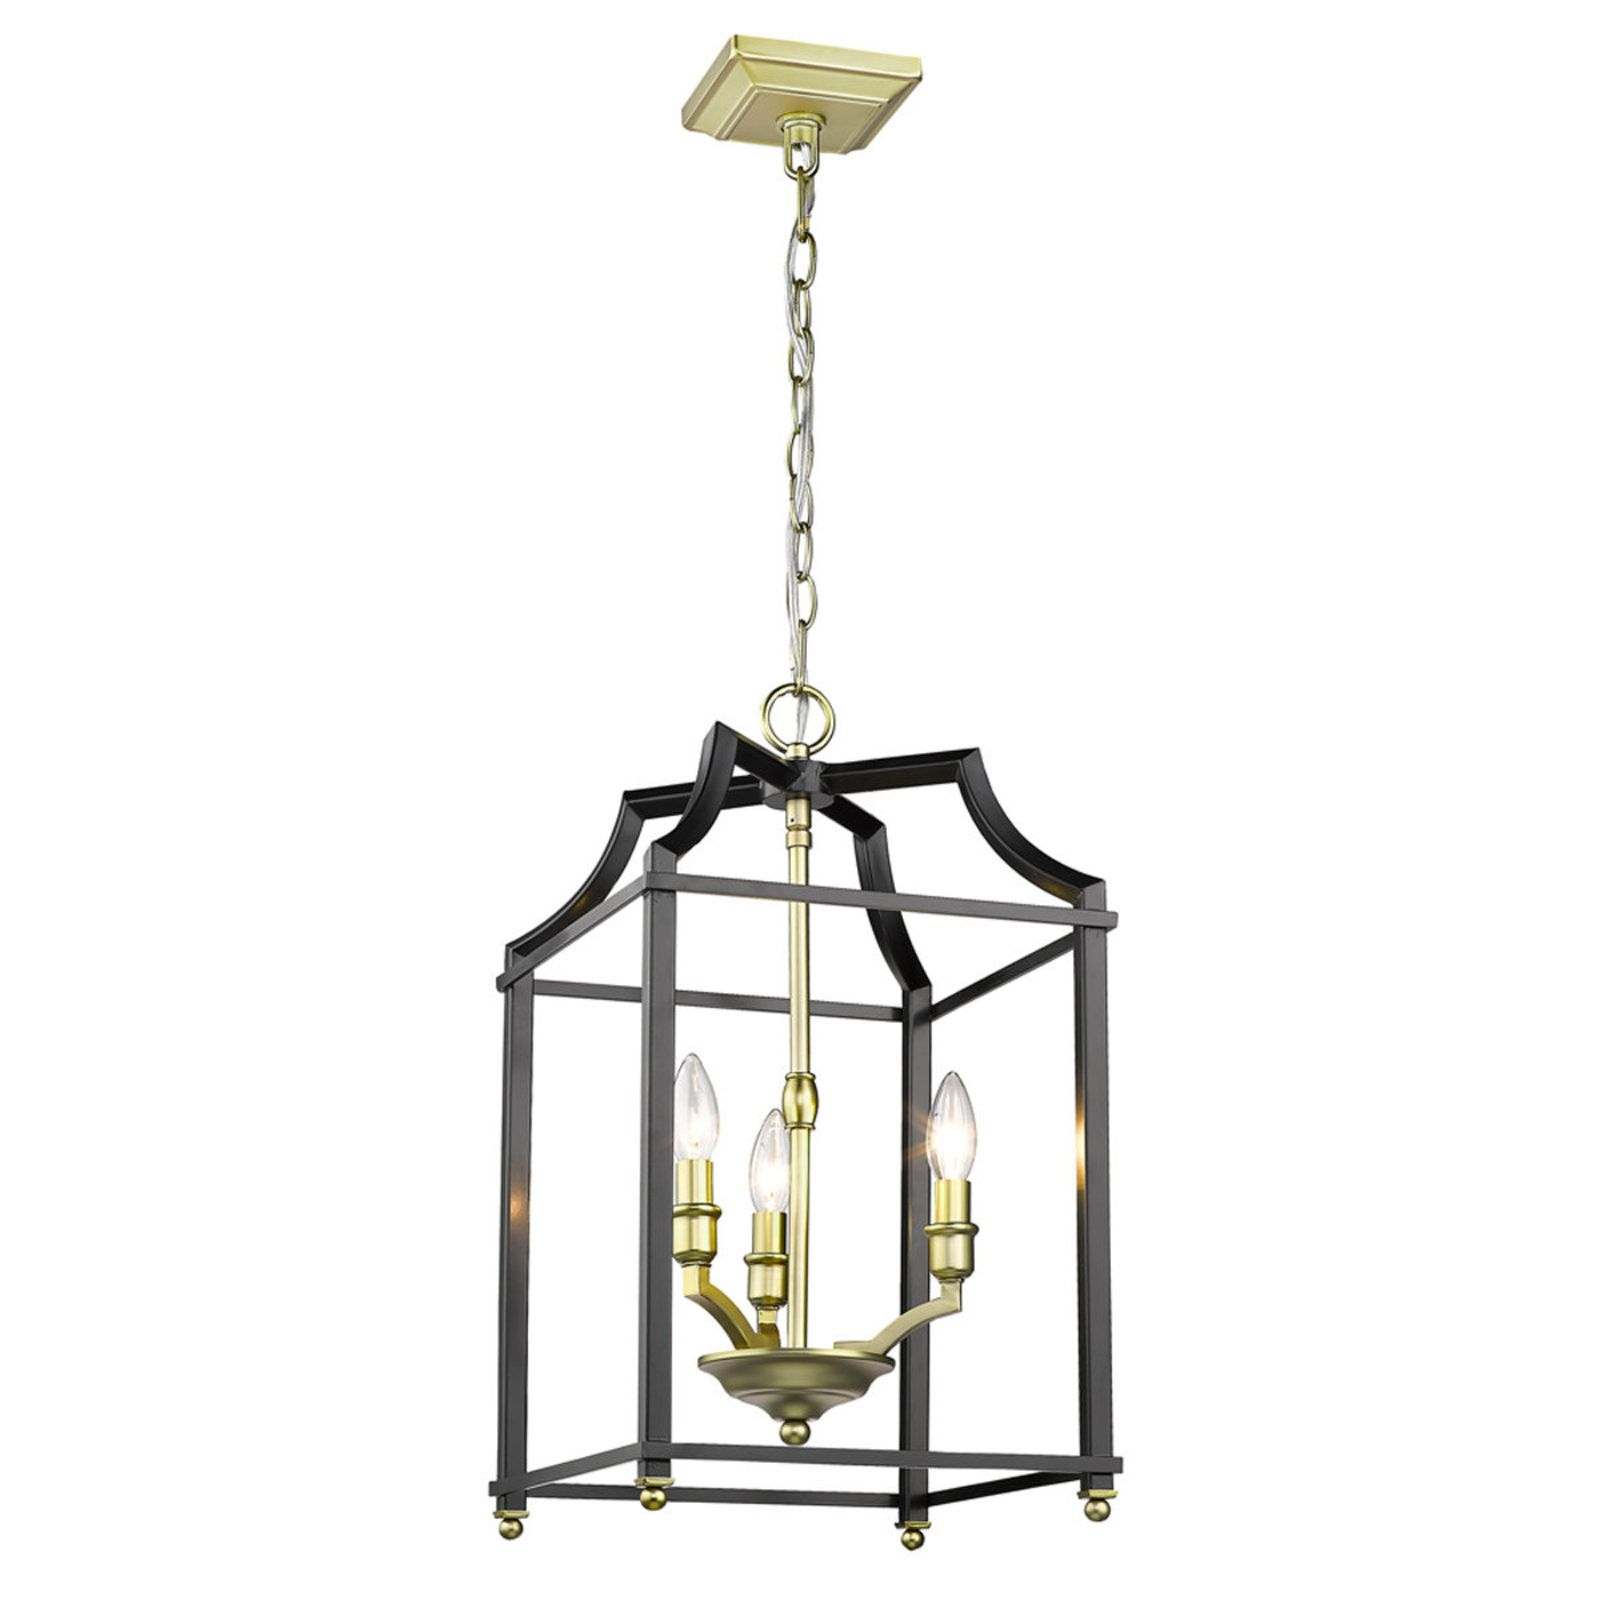 Payton 7 1 4 Wide Black Mini Pendant 33M86 Lamps Plus – Artofit Intended For Widely Used Leiters 3 Light Lantern Geometric Pendants (View 12 of 25)